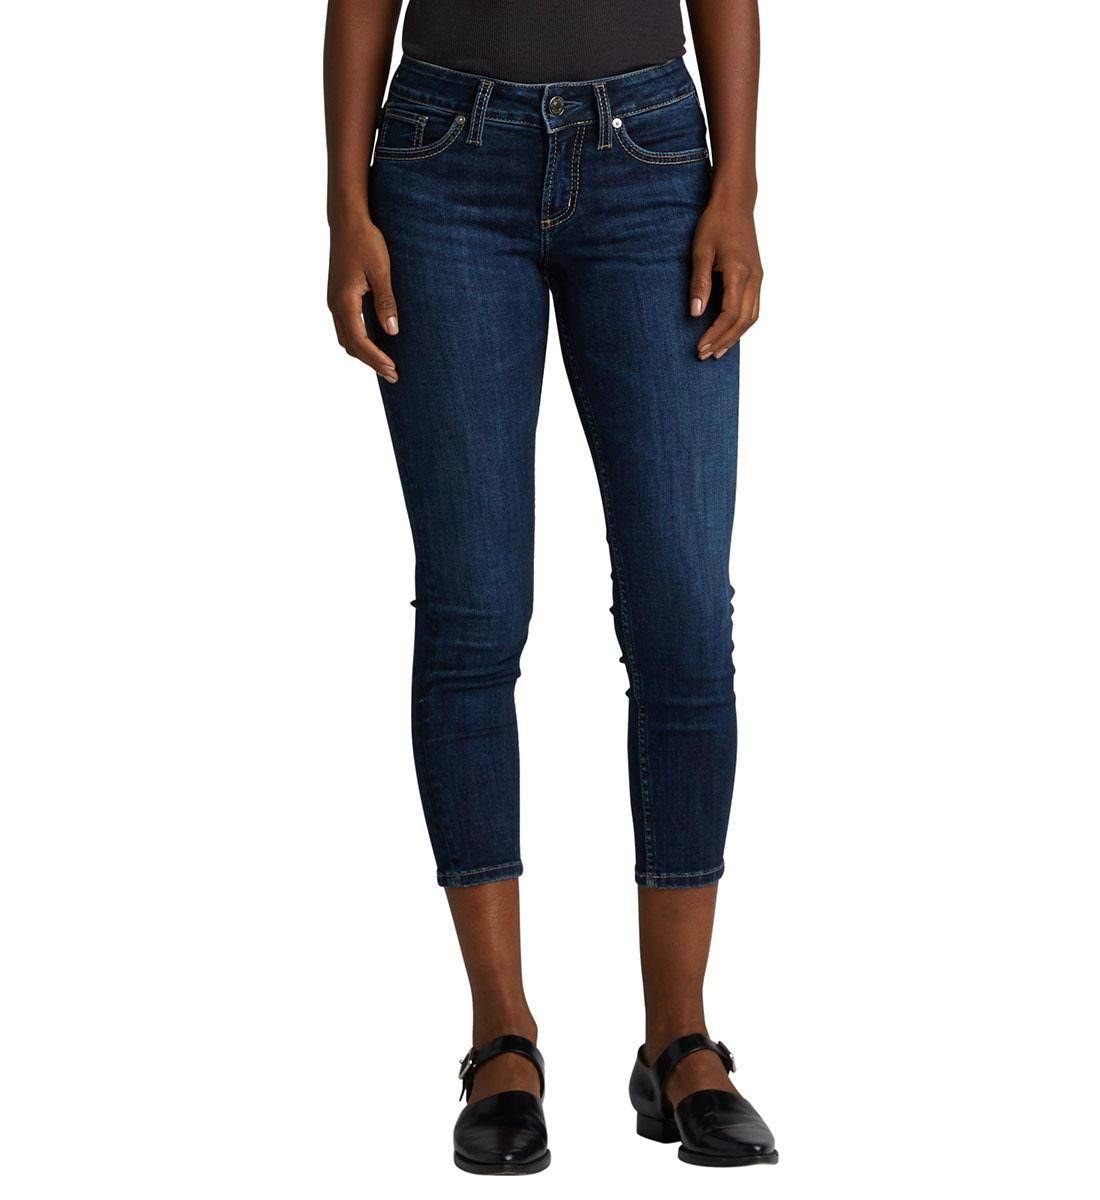 Silver Jeans Co. Women's Suki Mid Rise Skinny Crop Jeans - Indigo - 33